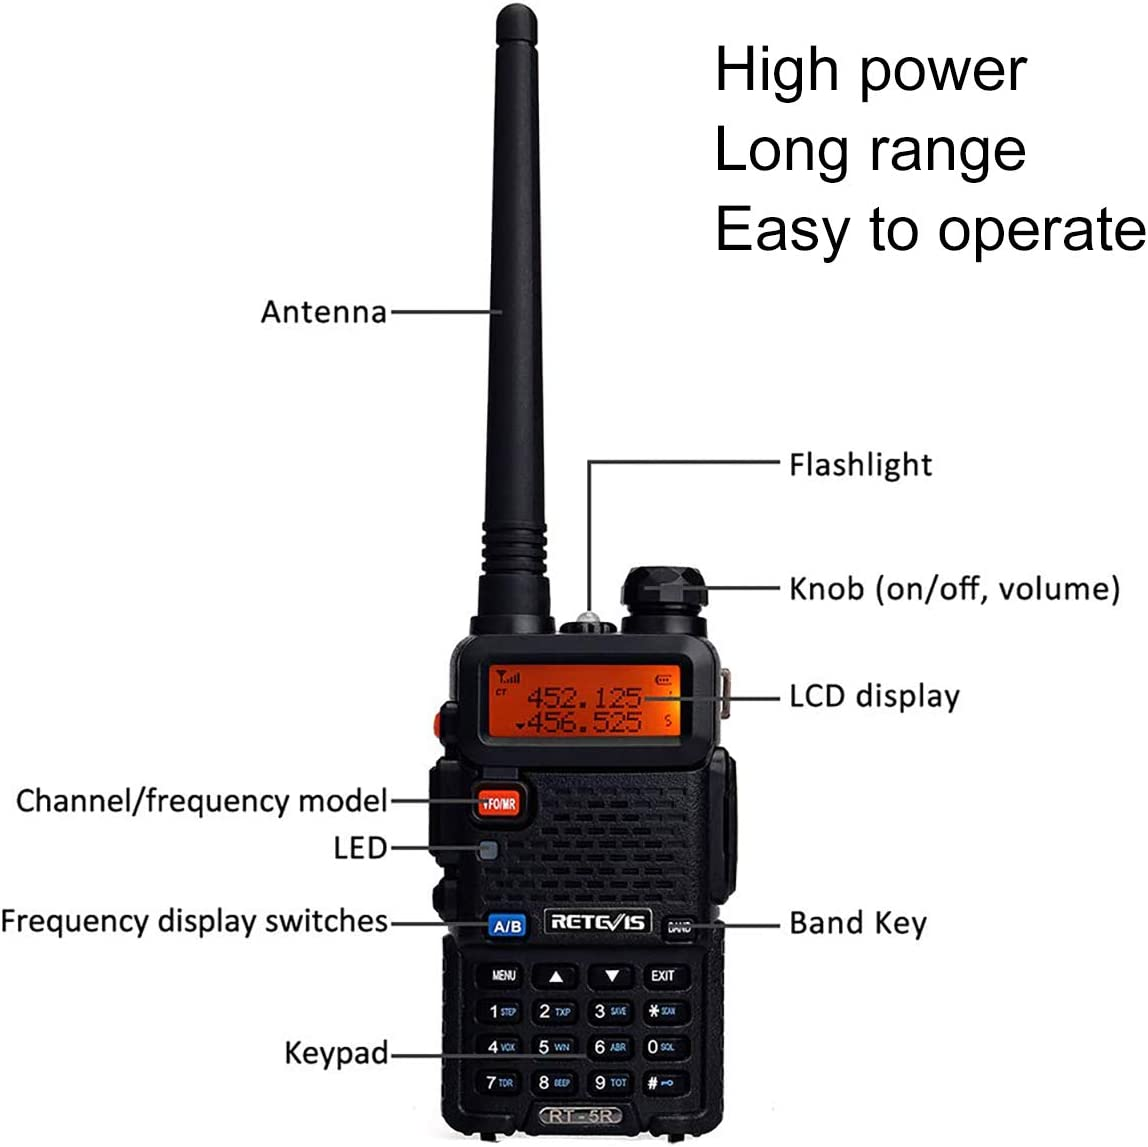 Retevis RT-5R 2 Way Radio 128CH FM UHF VHF Radio Dual Band Two-Way Radio Rechargeable Long Range Walkie Talkies for Adults (6 Pack) 612BsVswJHKLSL1200_